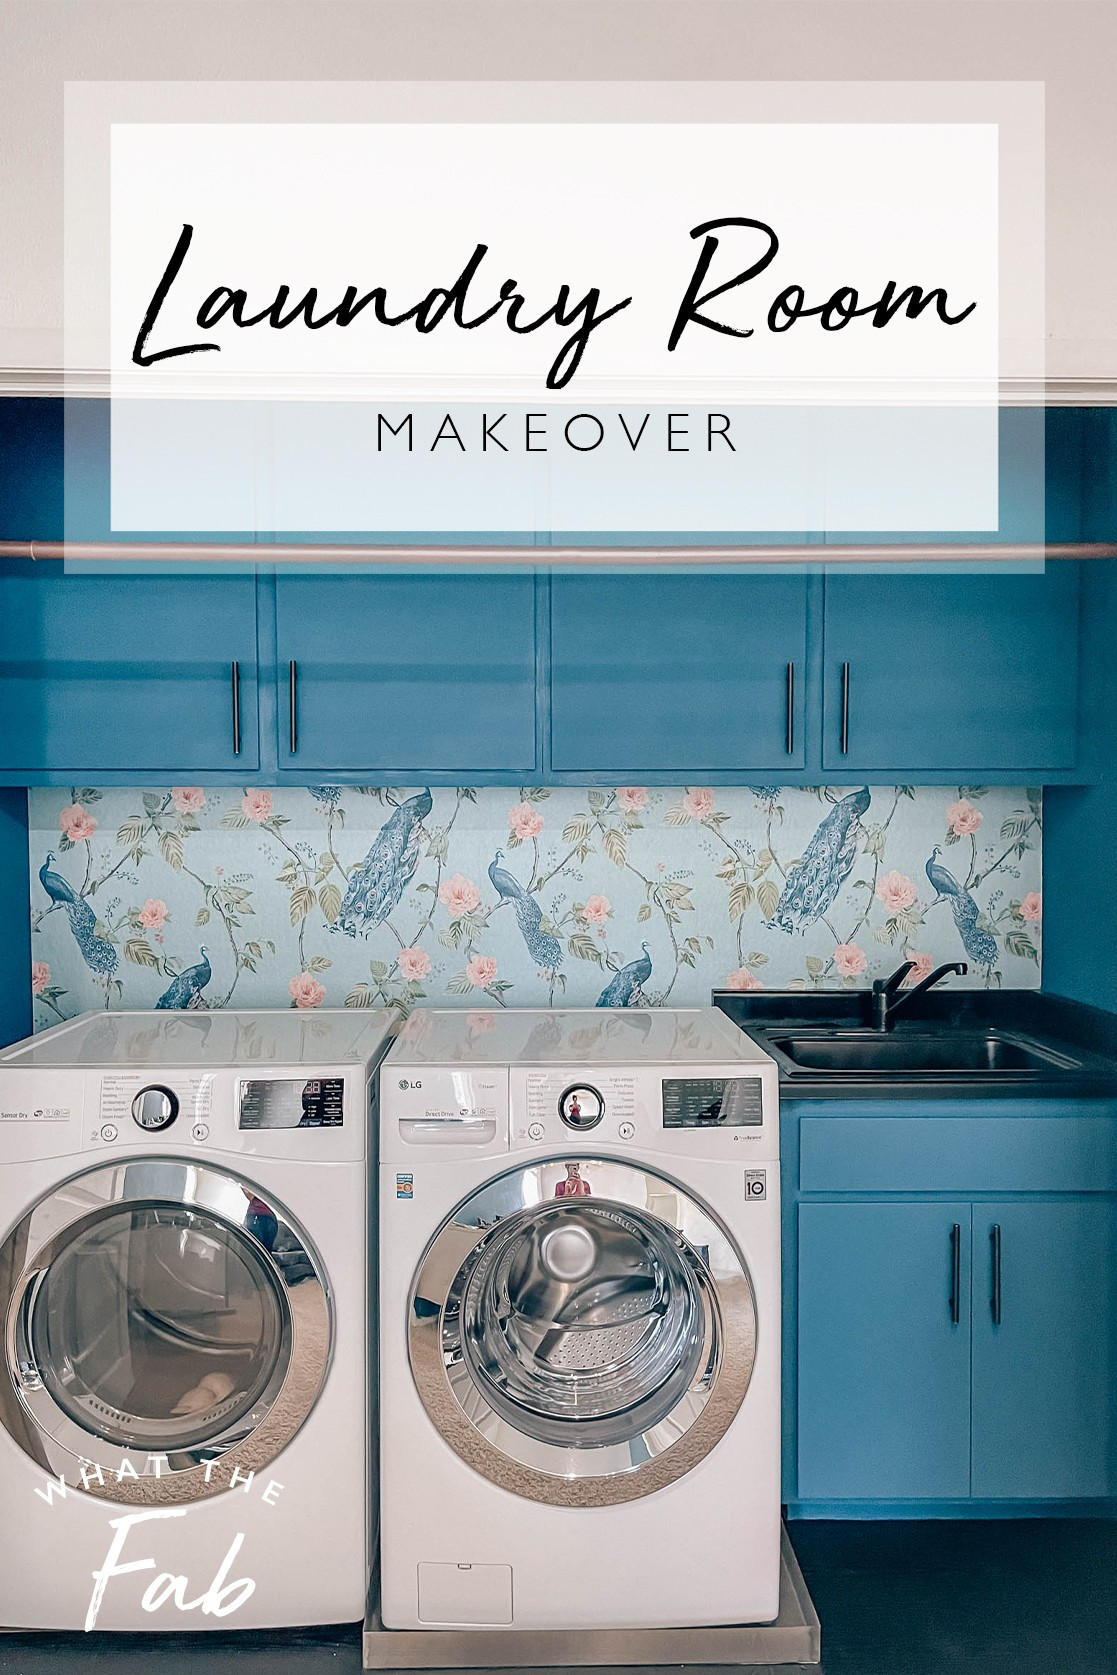 Laundry room wallpaper and makeover, by lifestyle blogger What The Fab